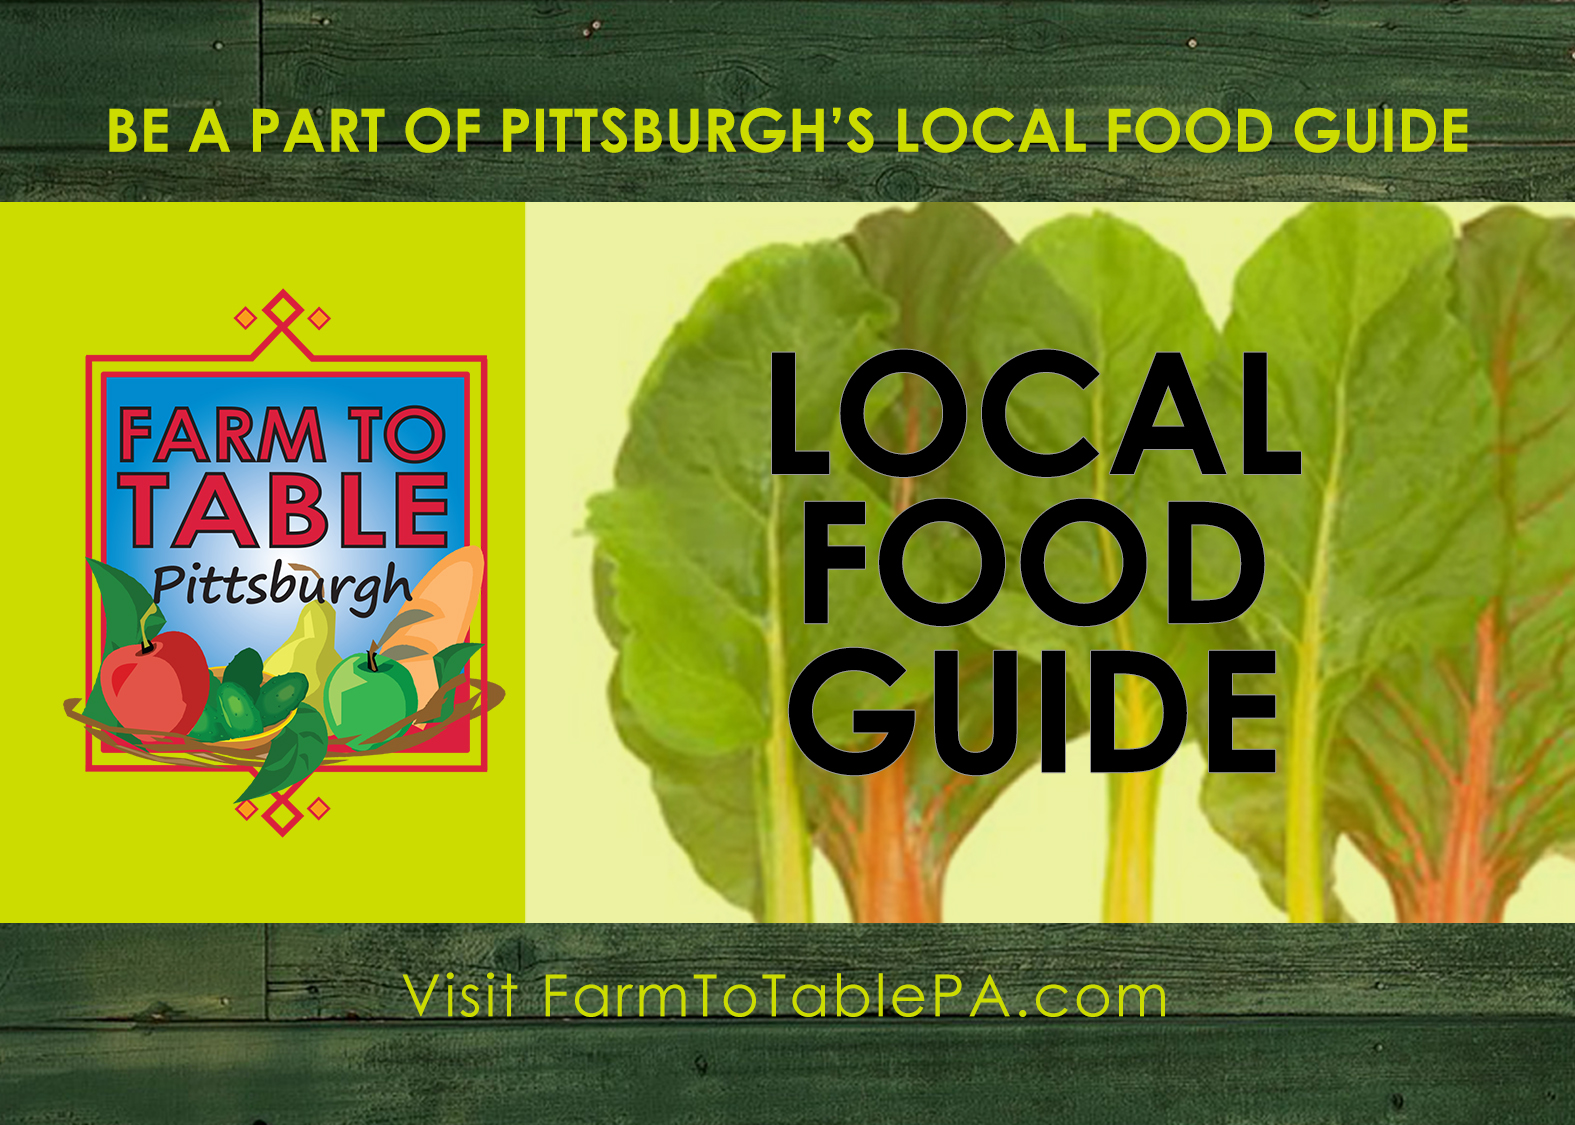 Western PA Local Food Guide – Call for Submissions – due 1/15/19